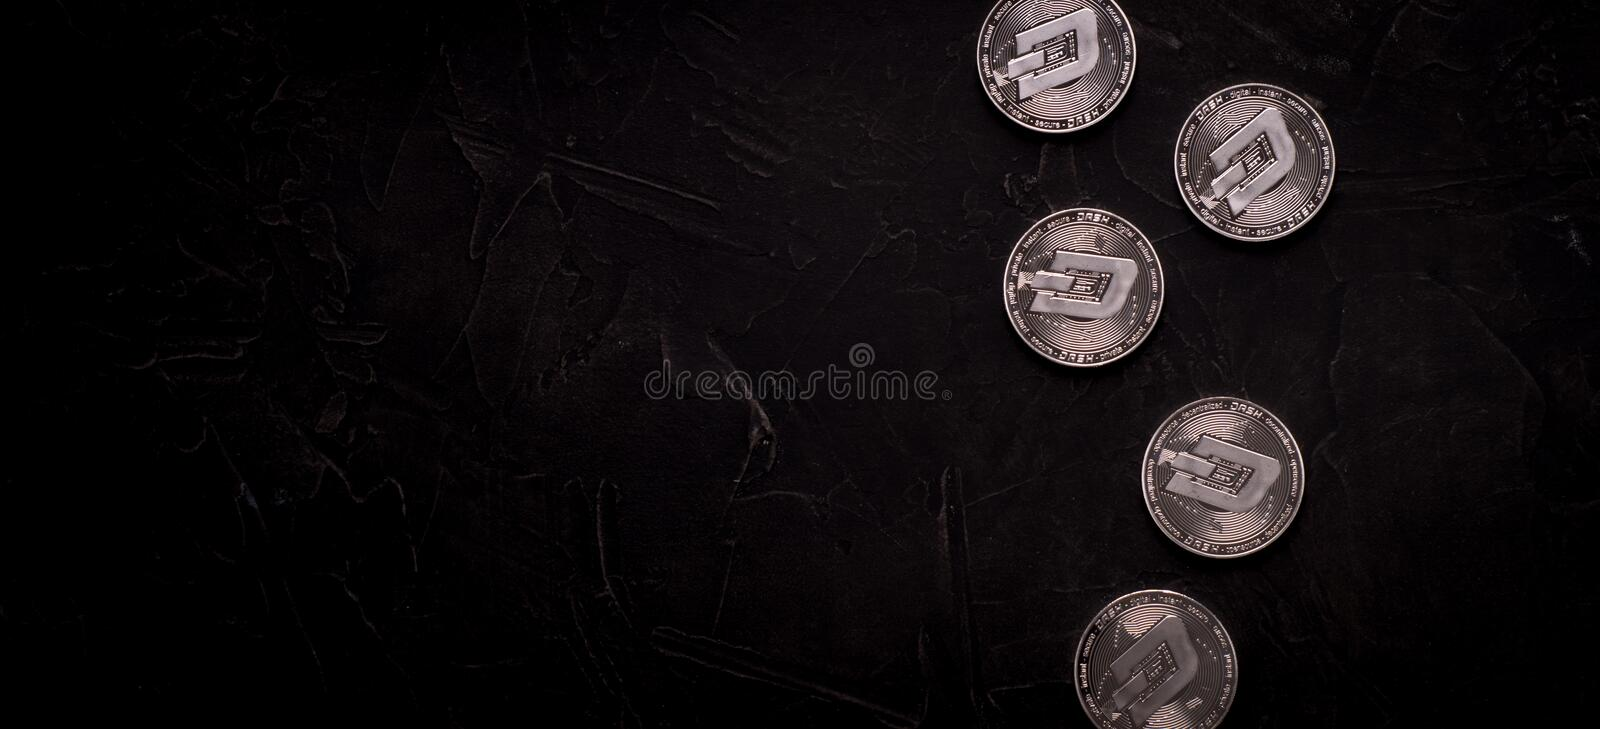 Digital currency physical metal silver dashcoin coin. stock image